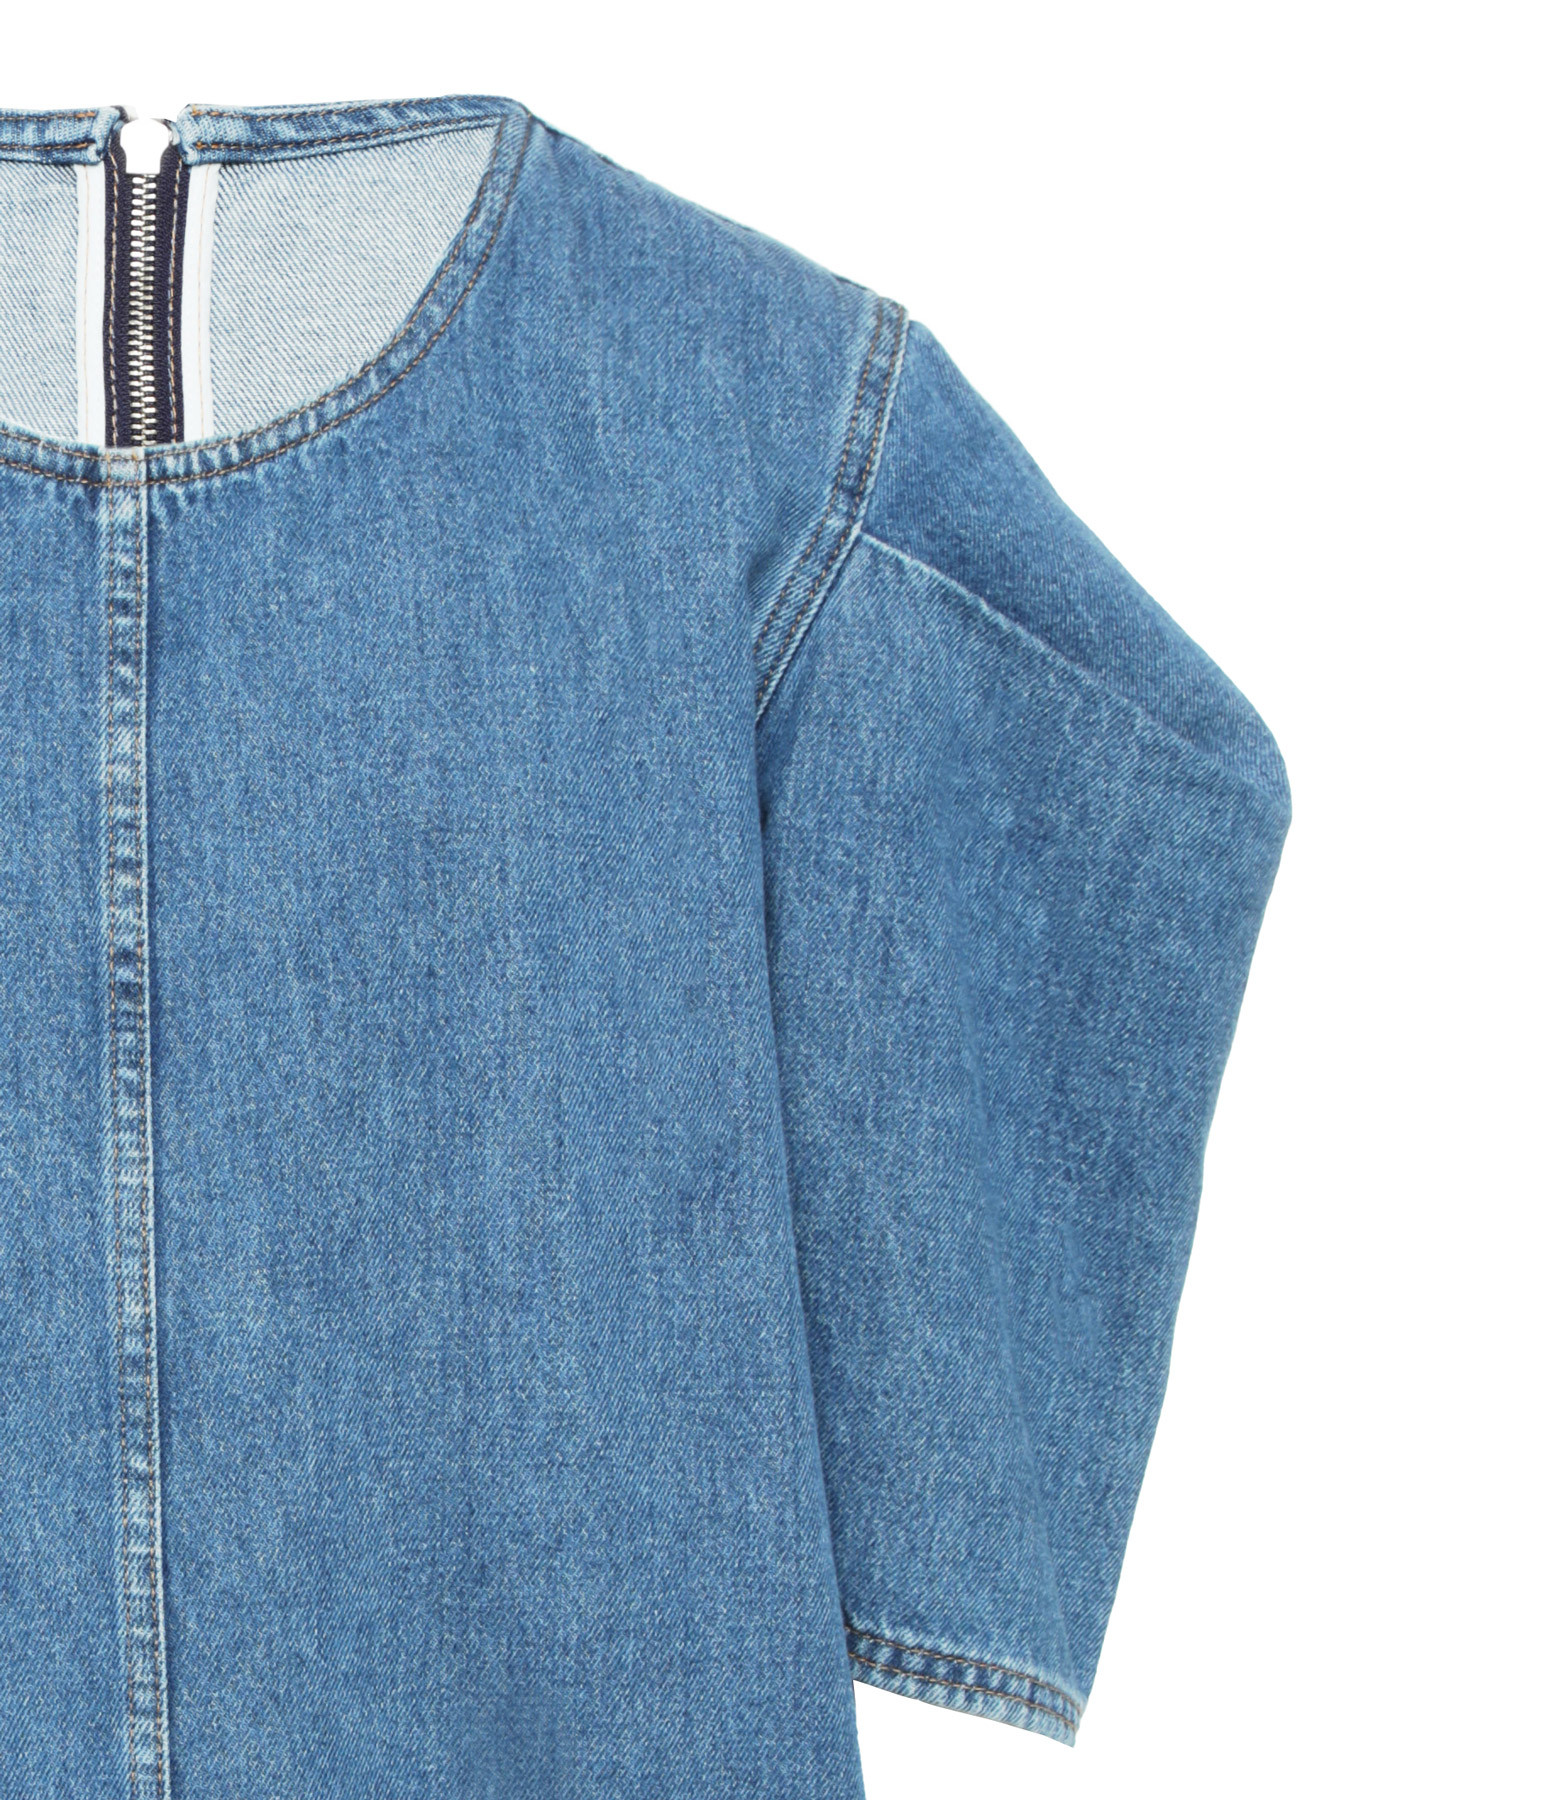 MM6 MAISON MARGIELA - Robe Indigo Denim Délavé